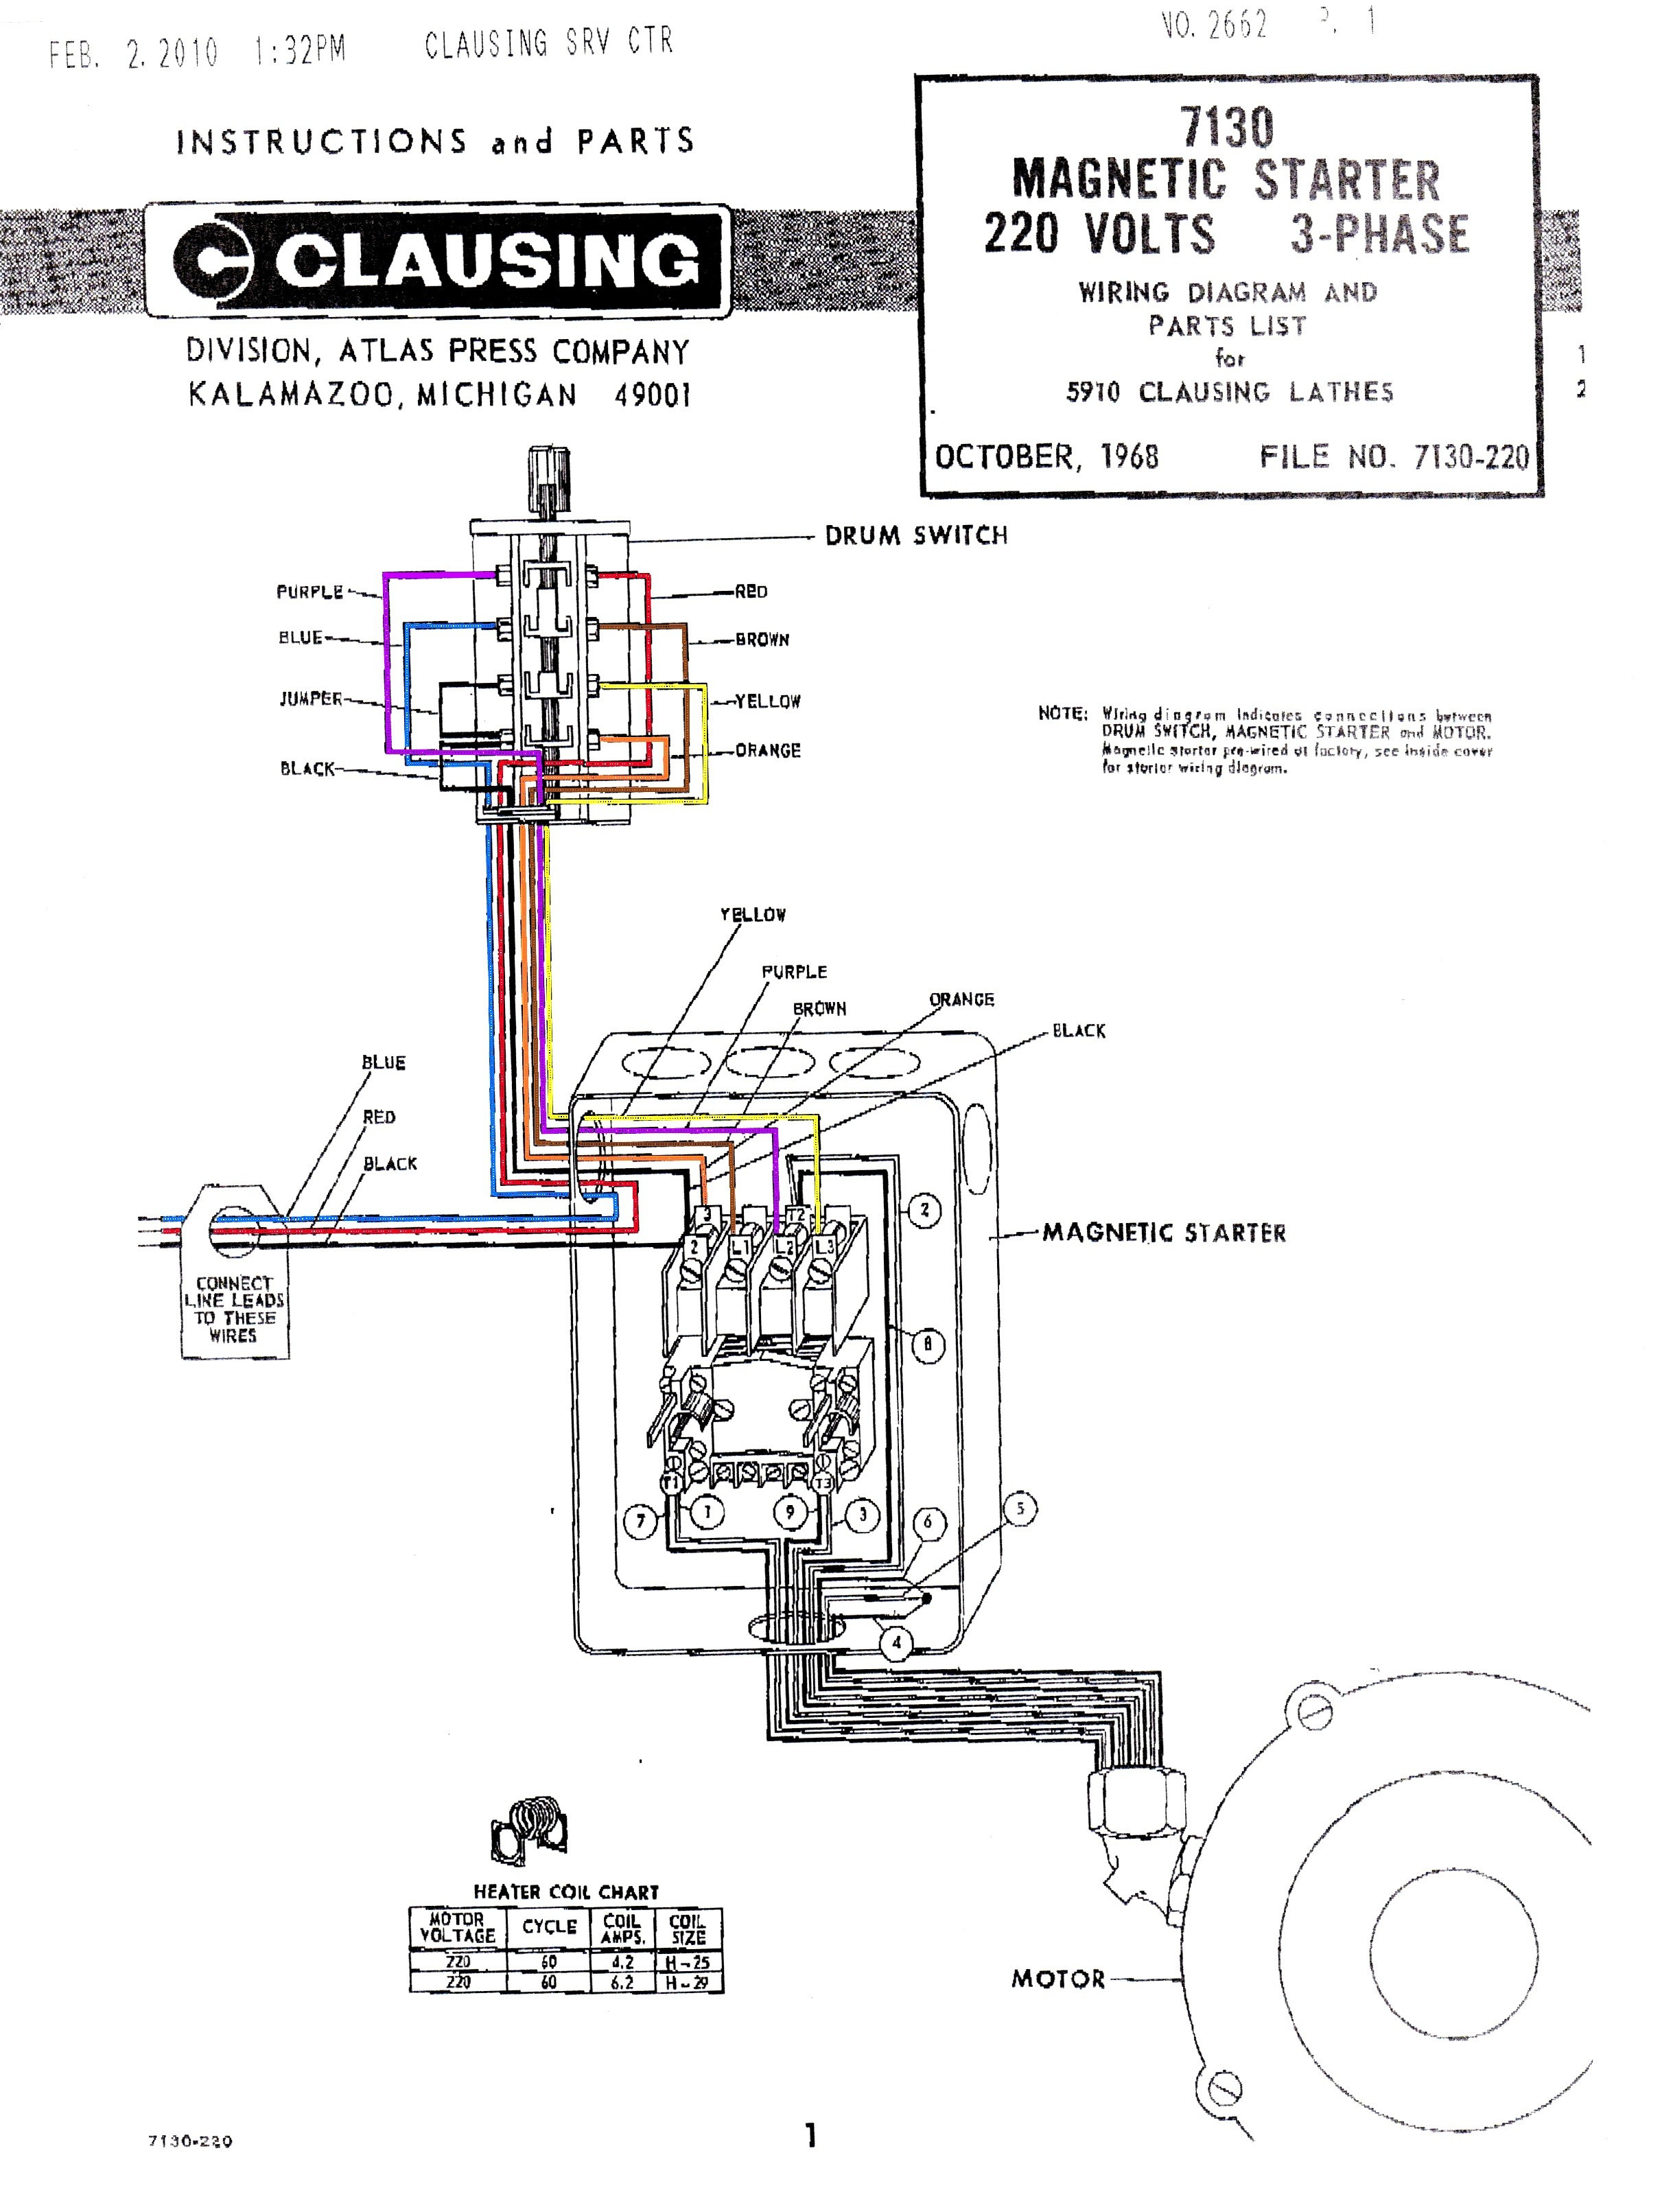 Dol Starters Wiring Diagram Hd Quality Basic Electrical Diagram Altalangaleader It